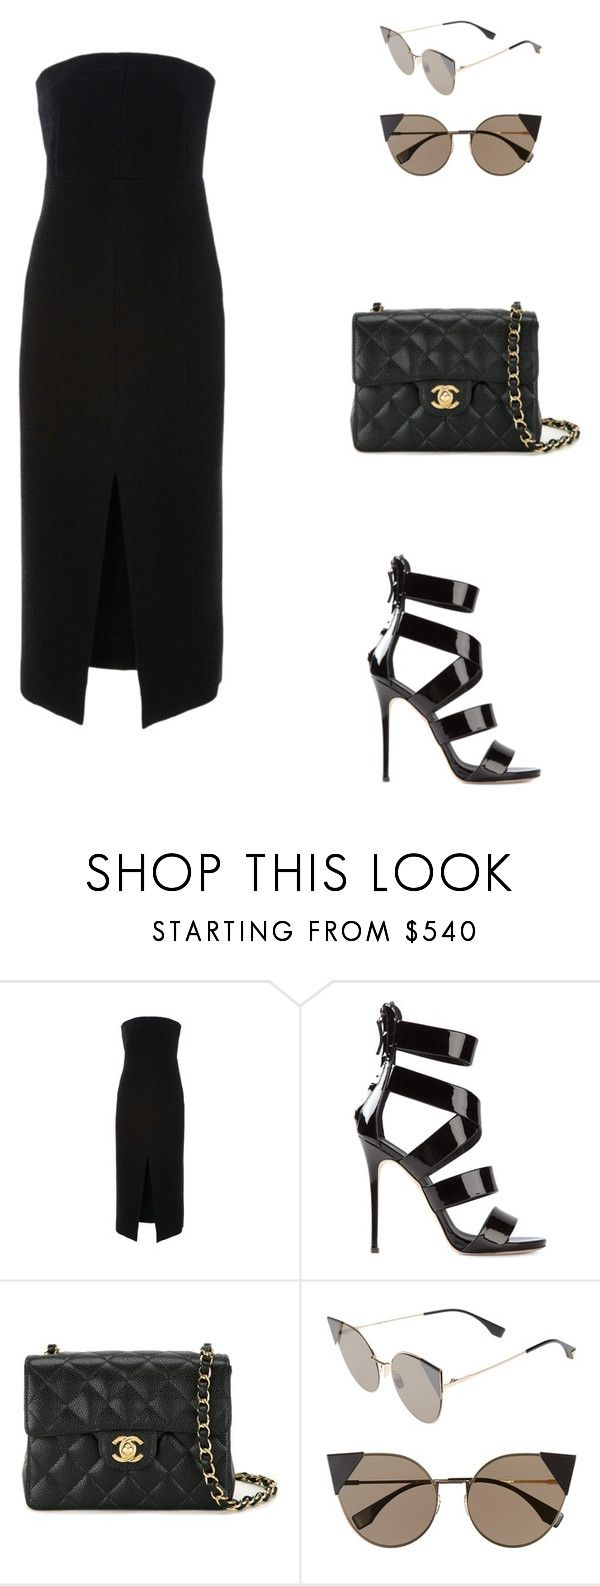 """UGG Store in New York."" by cmmpany ❤ liked on Polyvore featuring Protagonist, Giuseppe Zanotti, Chanel and Fendi"